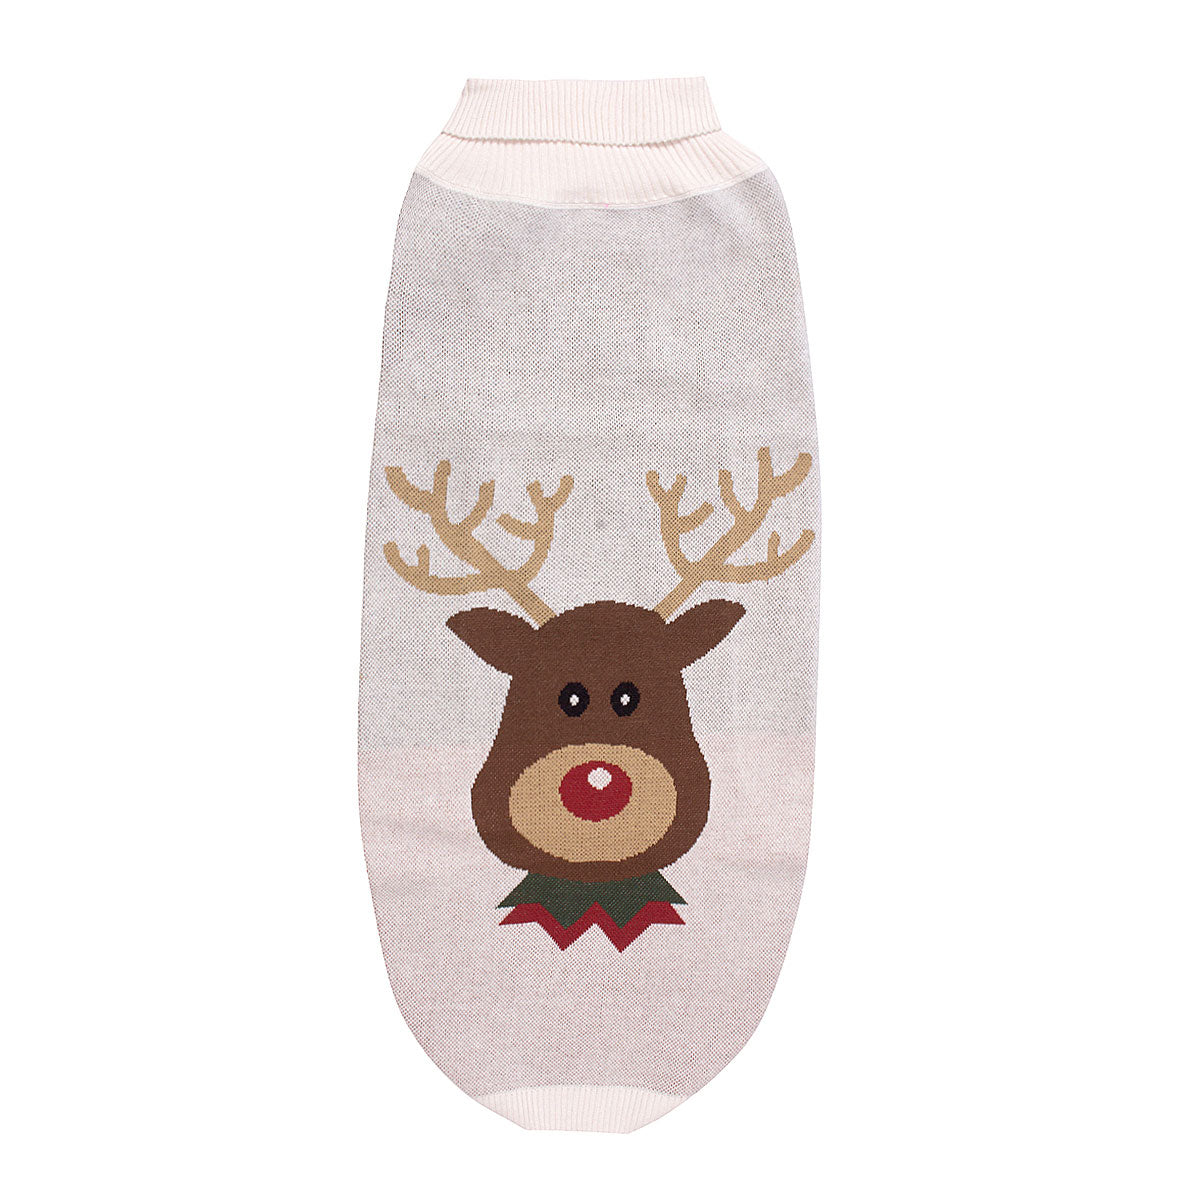 Halo Reindeer Dog Sweater_2245